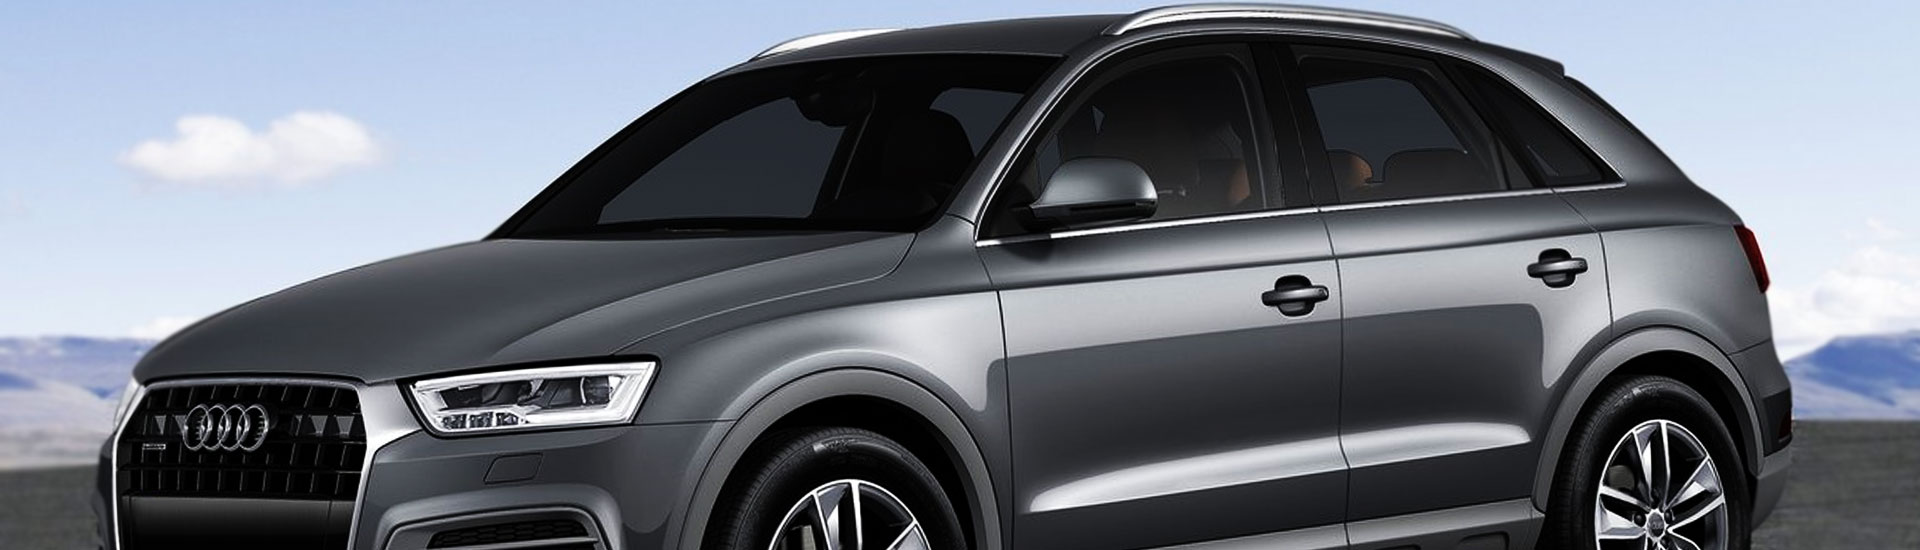 Audi Q3 Window Tint